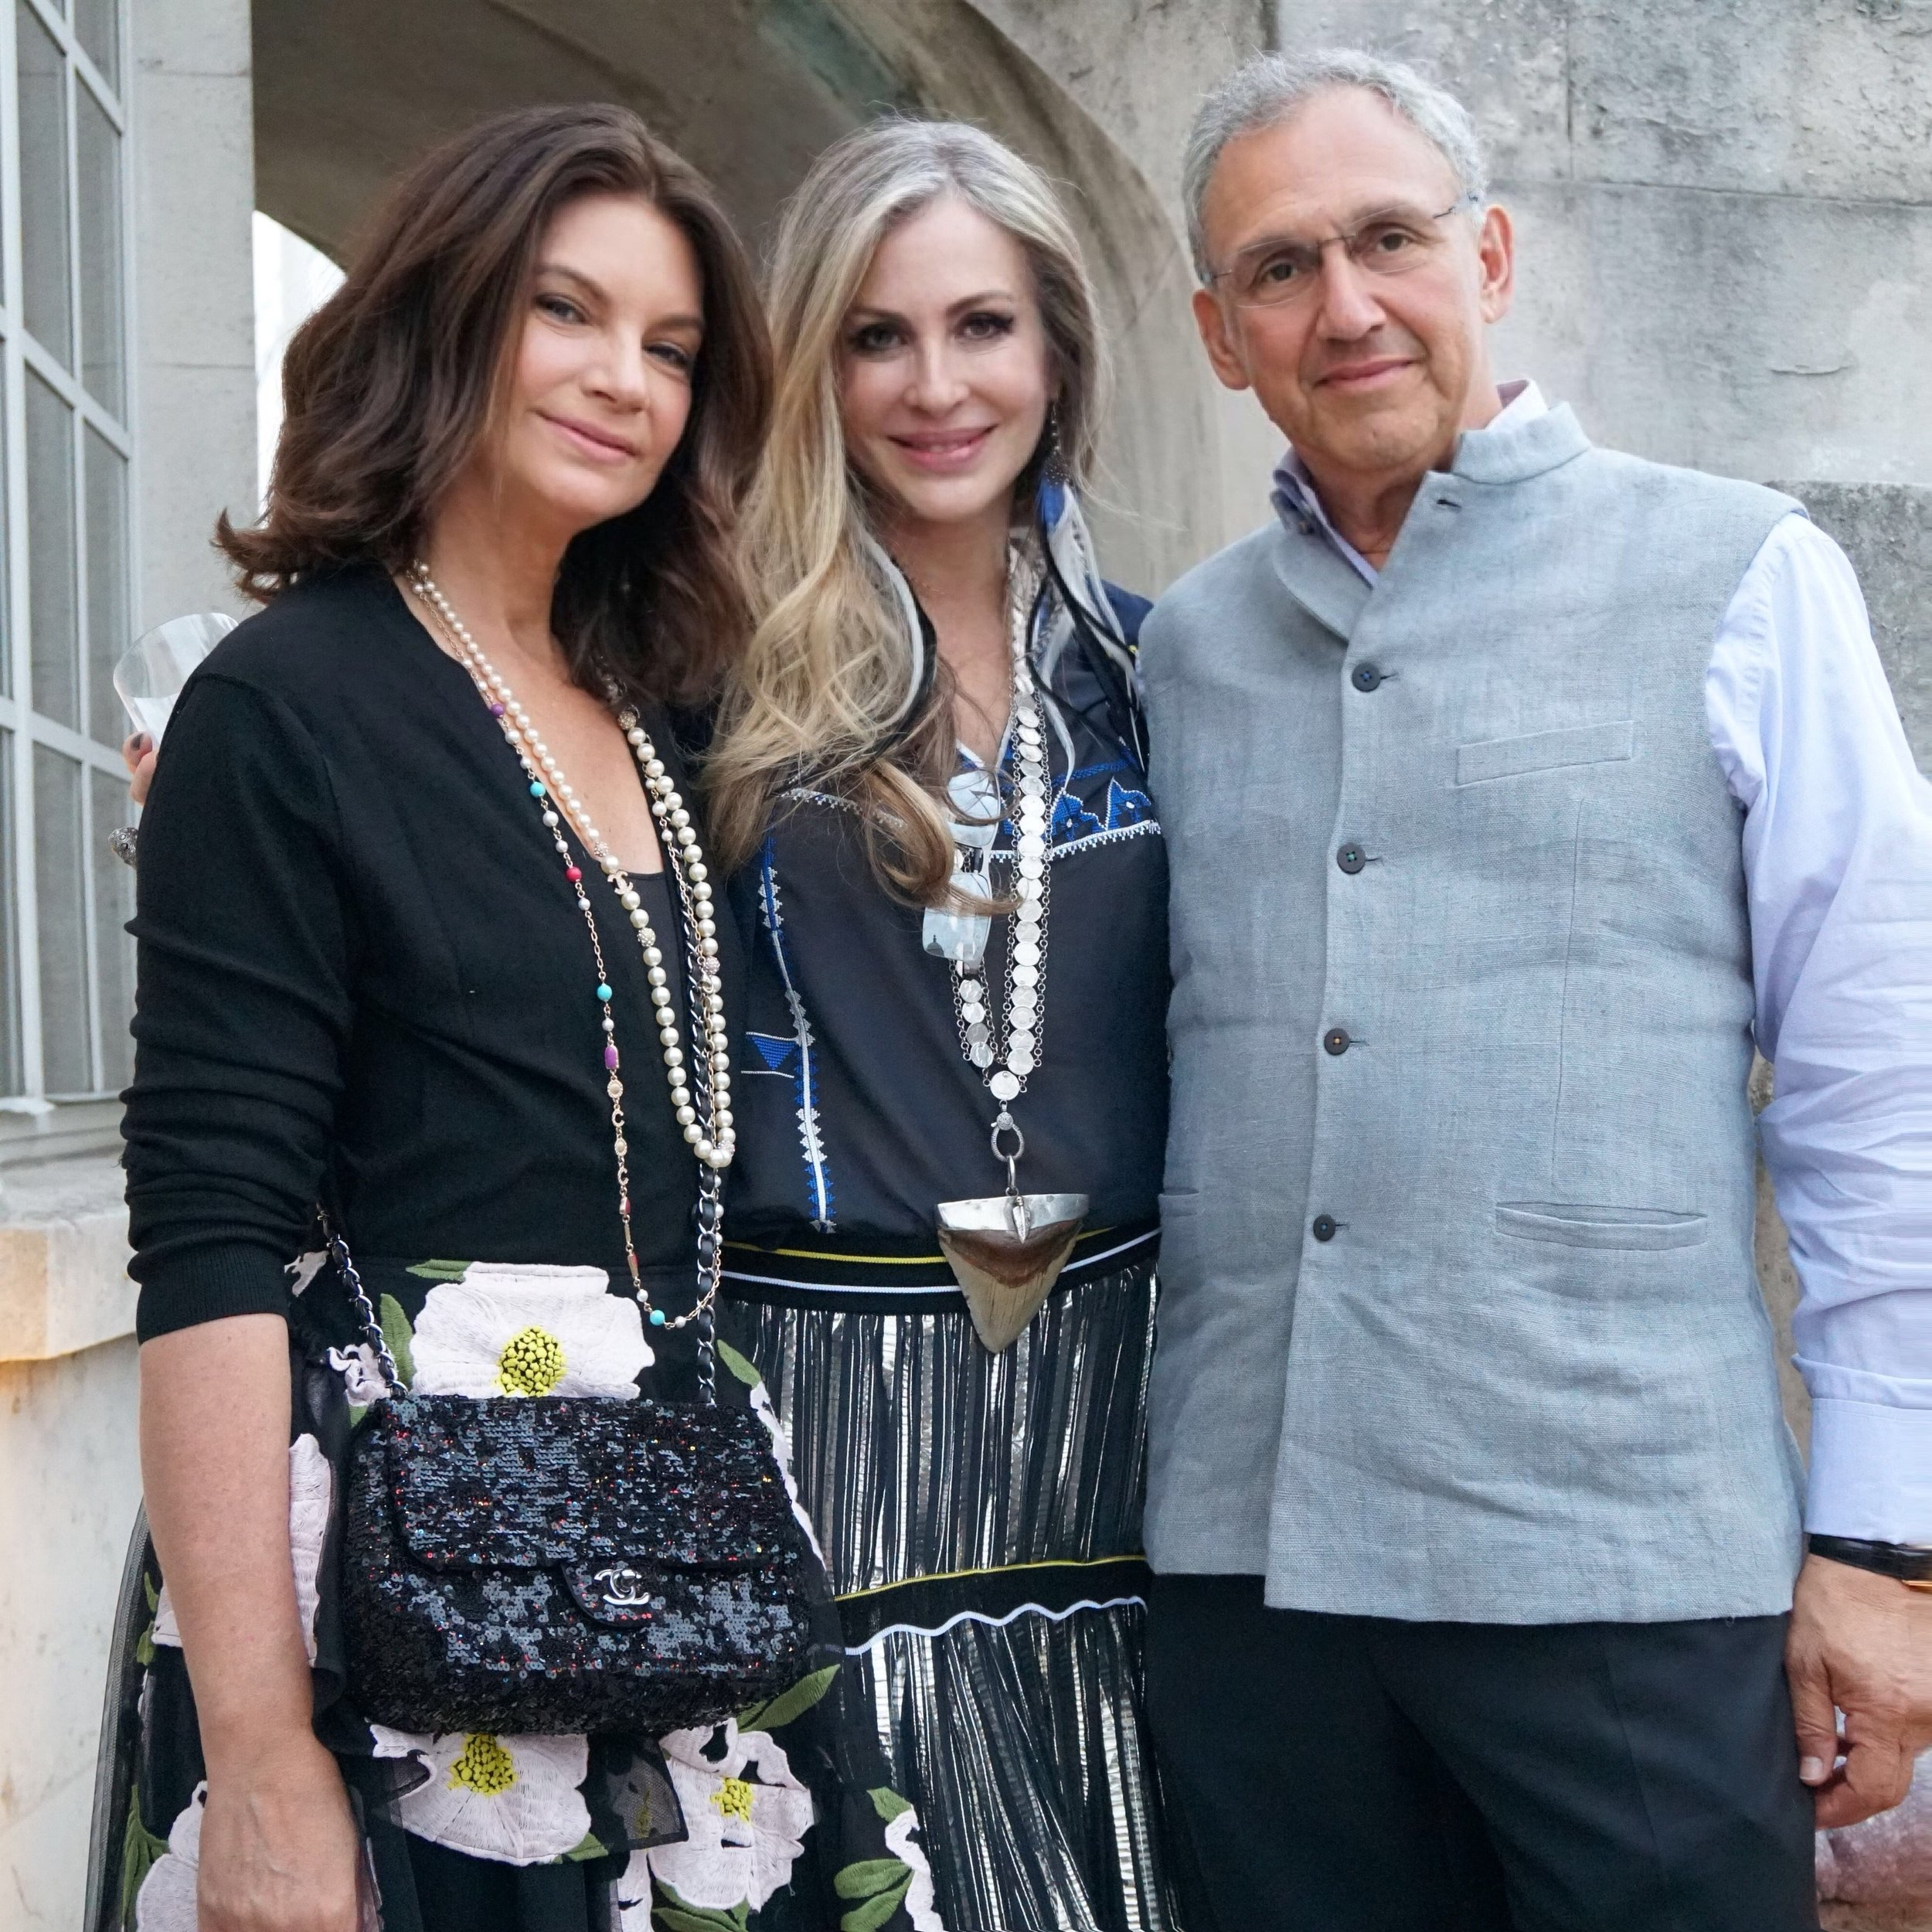 Carmen with friends and former Net-a-Porter colleagues Dame Natalie Massenet and Mark Sebba.